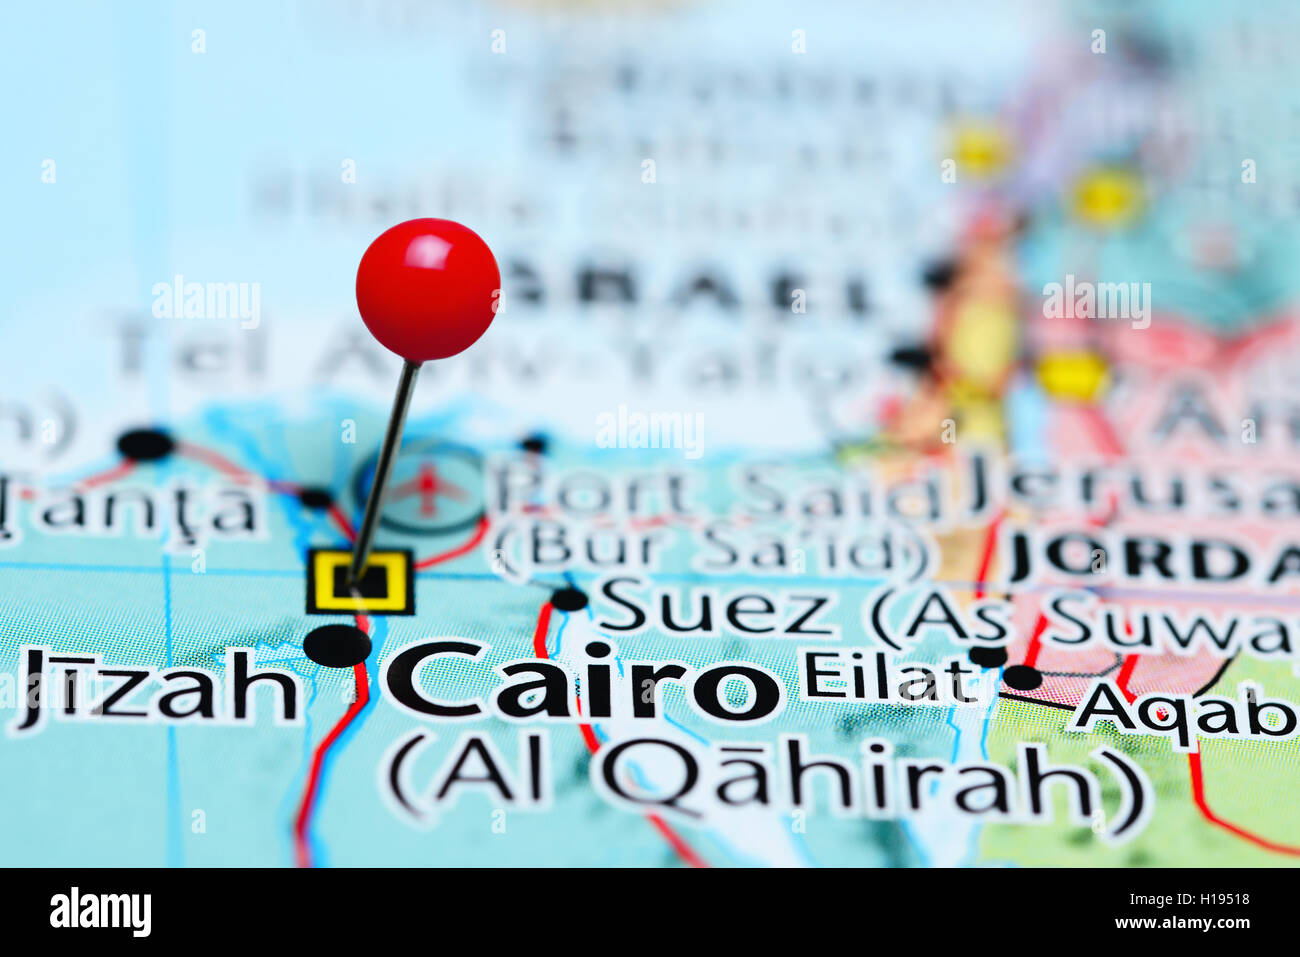 Al Qahirah Stock Photos Al Qahirah Stock Images Alamy